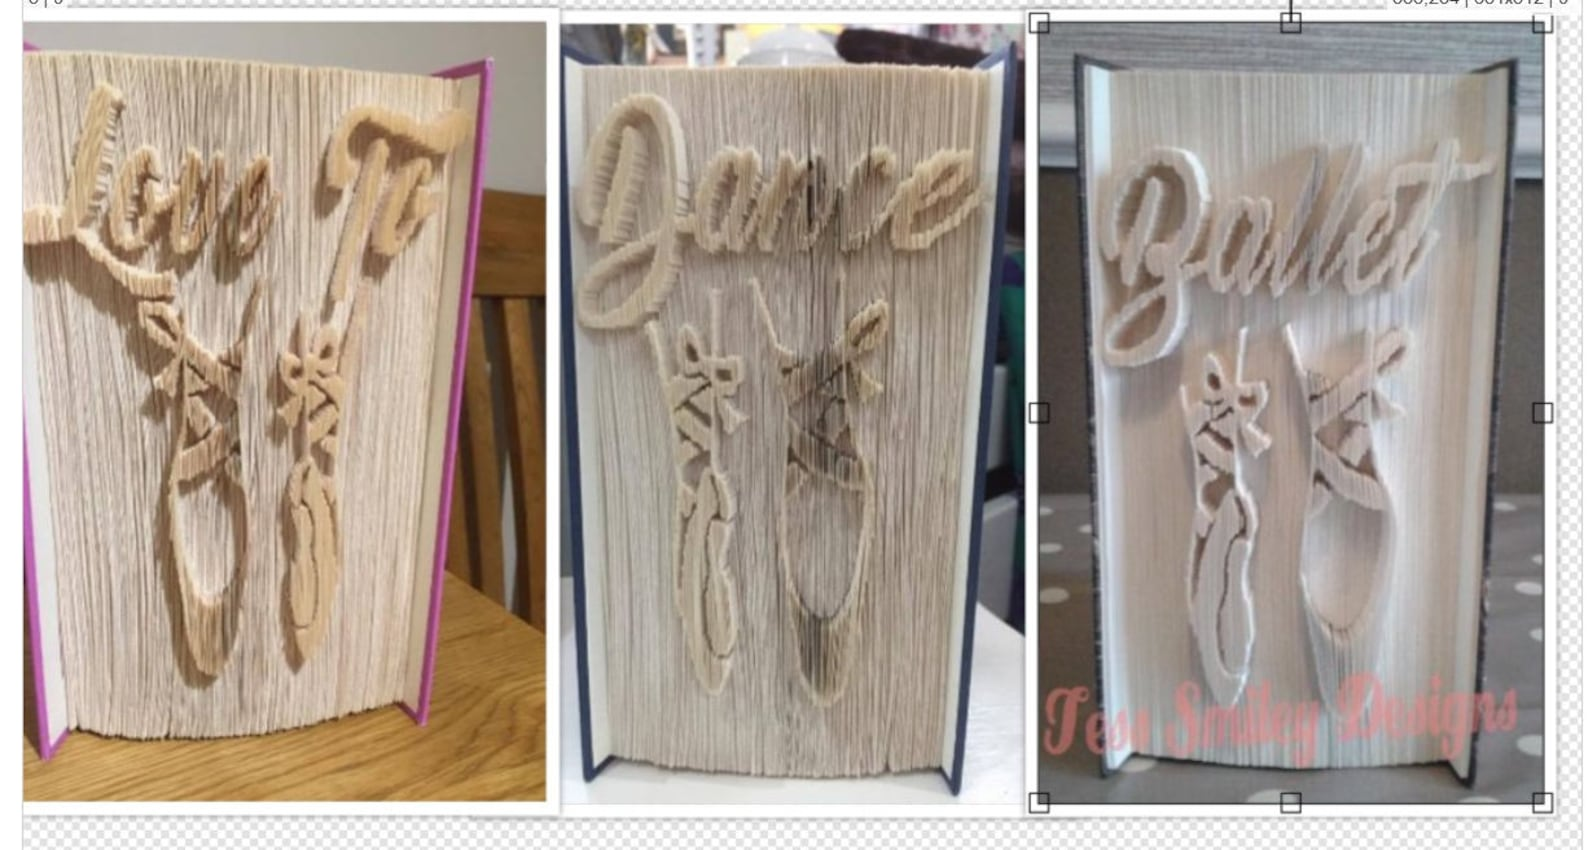 love to dance ballet shoes 3 book folding patterns bundle idea gift bookart